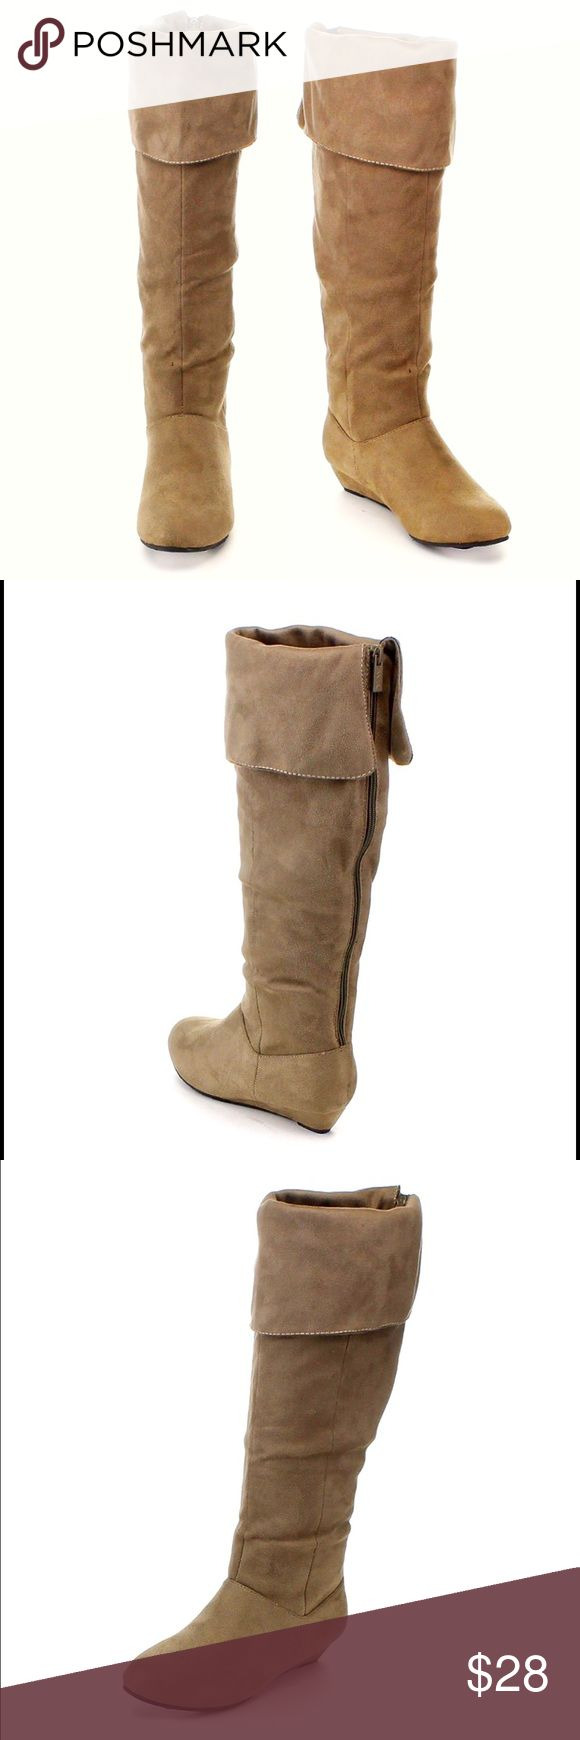 TAUPE FOLDOVER KNEE HIGH WEDGE BOOTS Only worn once for about an hour and look brand new.  taupe color faux suede. Zips up the back. About a 1.5 inch small wedge. Super comfortable. Size 7.5 but also will fit an 8. Also selling these in black. Shoes Over the Knee Boots